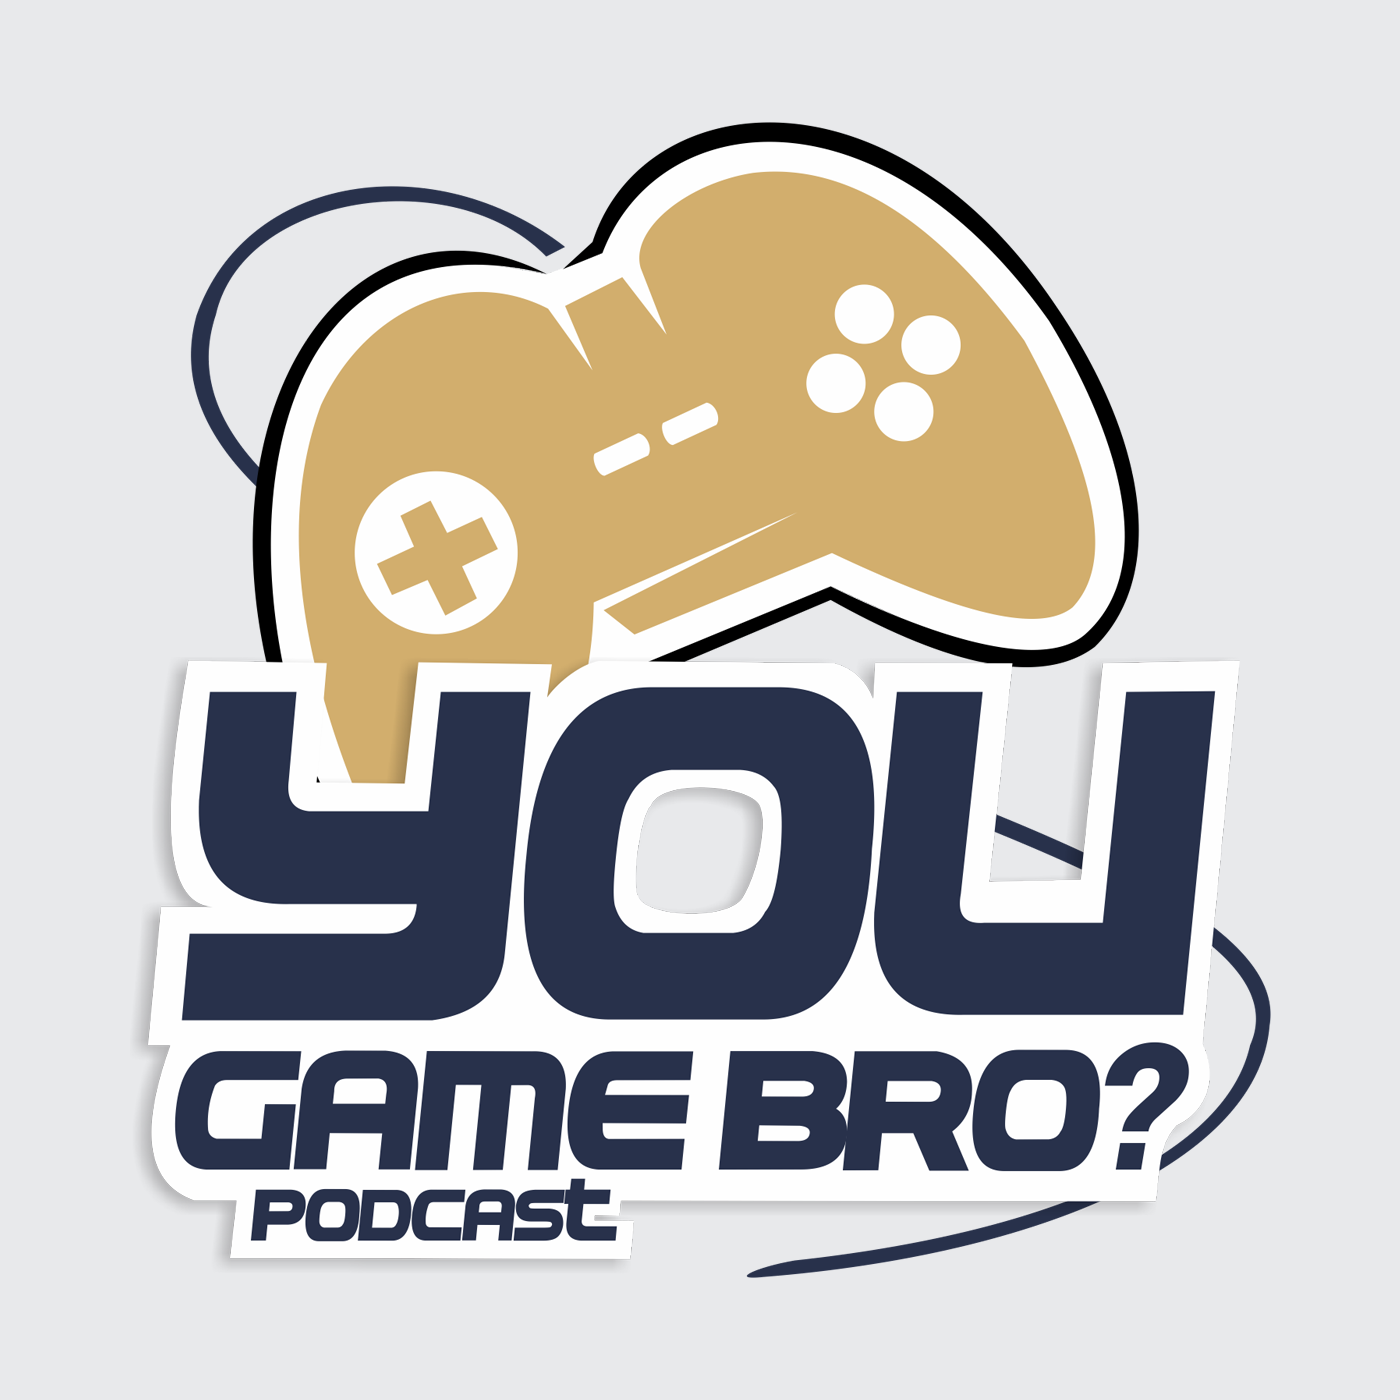 """YOU GAME BRO?    From the mind of Adam Perry, comes the leading Australian Gaming Community Podcast, """"You Game Bro?"""". Now with it's new home, part of the ATEBIT Collective, Join Nato and Krusey, as they bring you some of the brilliant minds of Twitch, YouTube, and the Aussie Gaming Industry."""